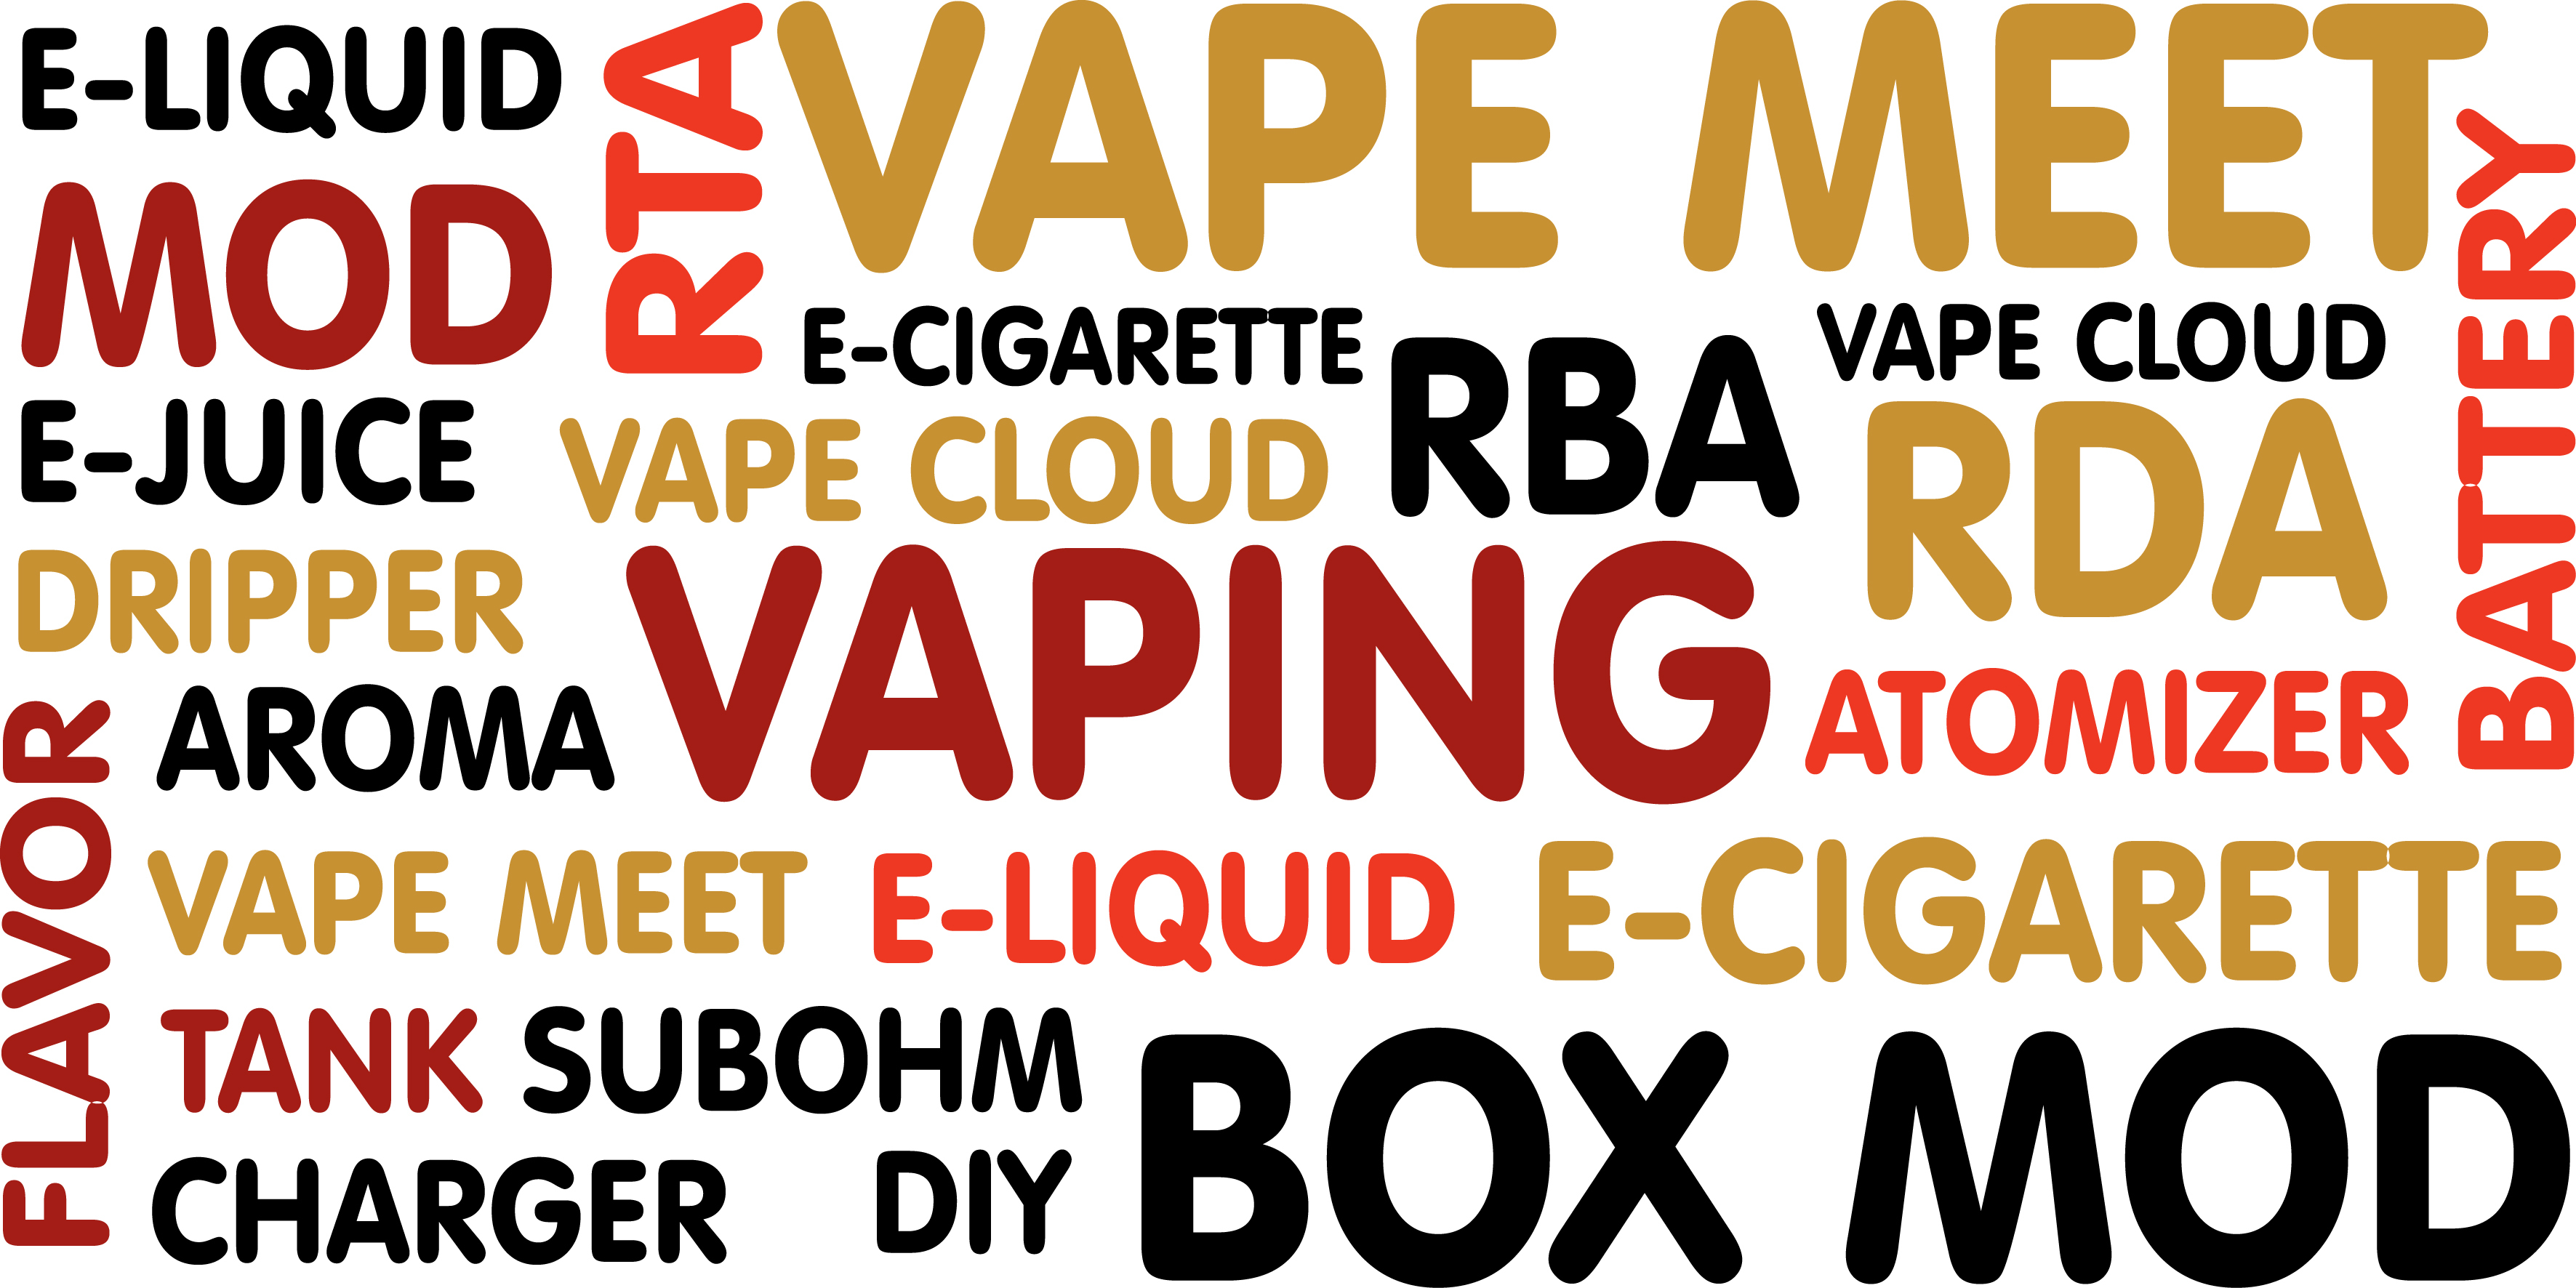 Tips for New Vapers